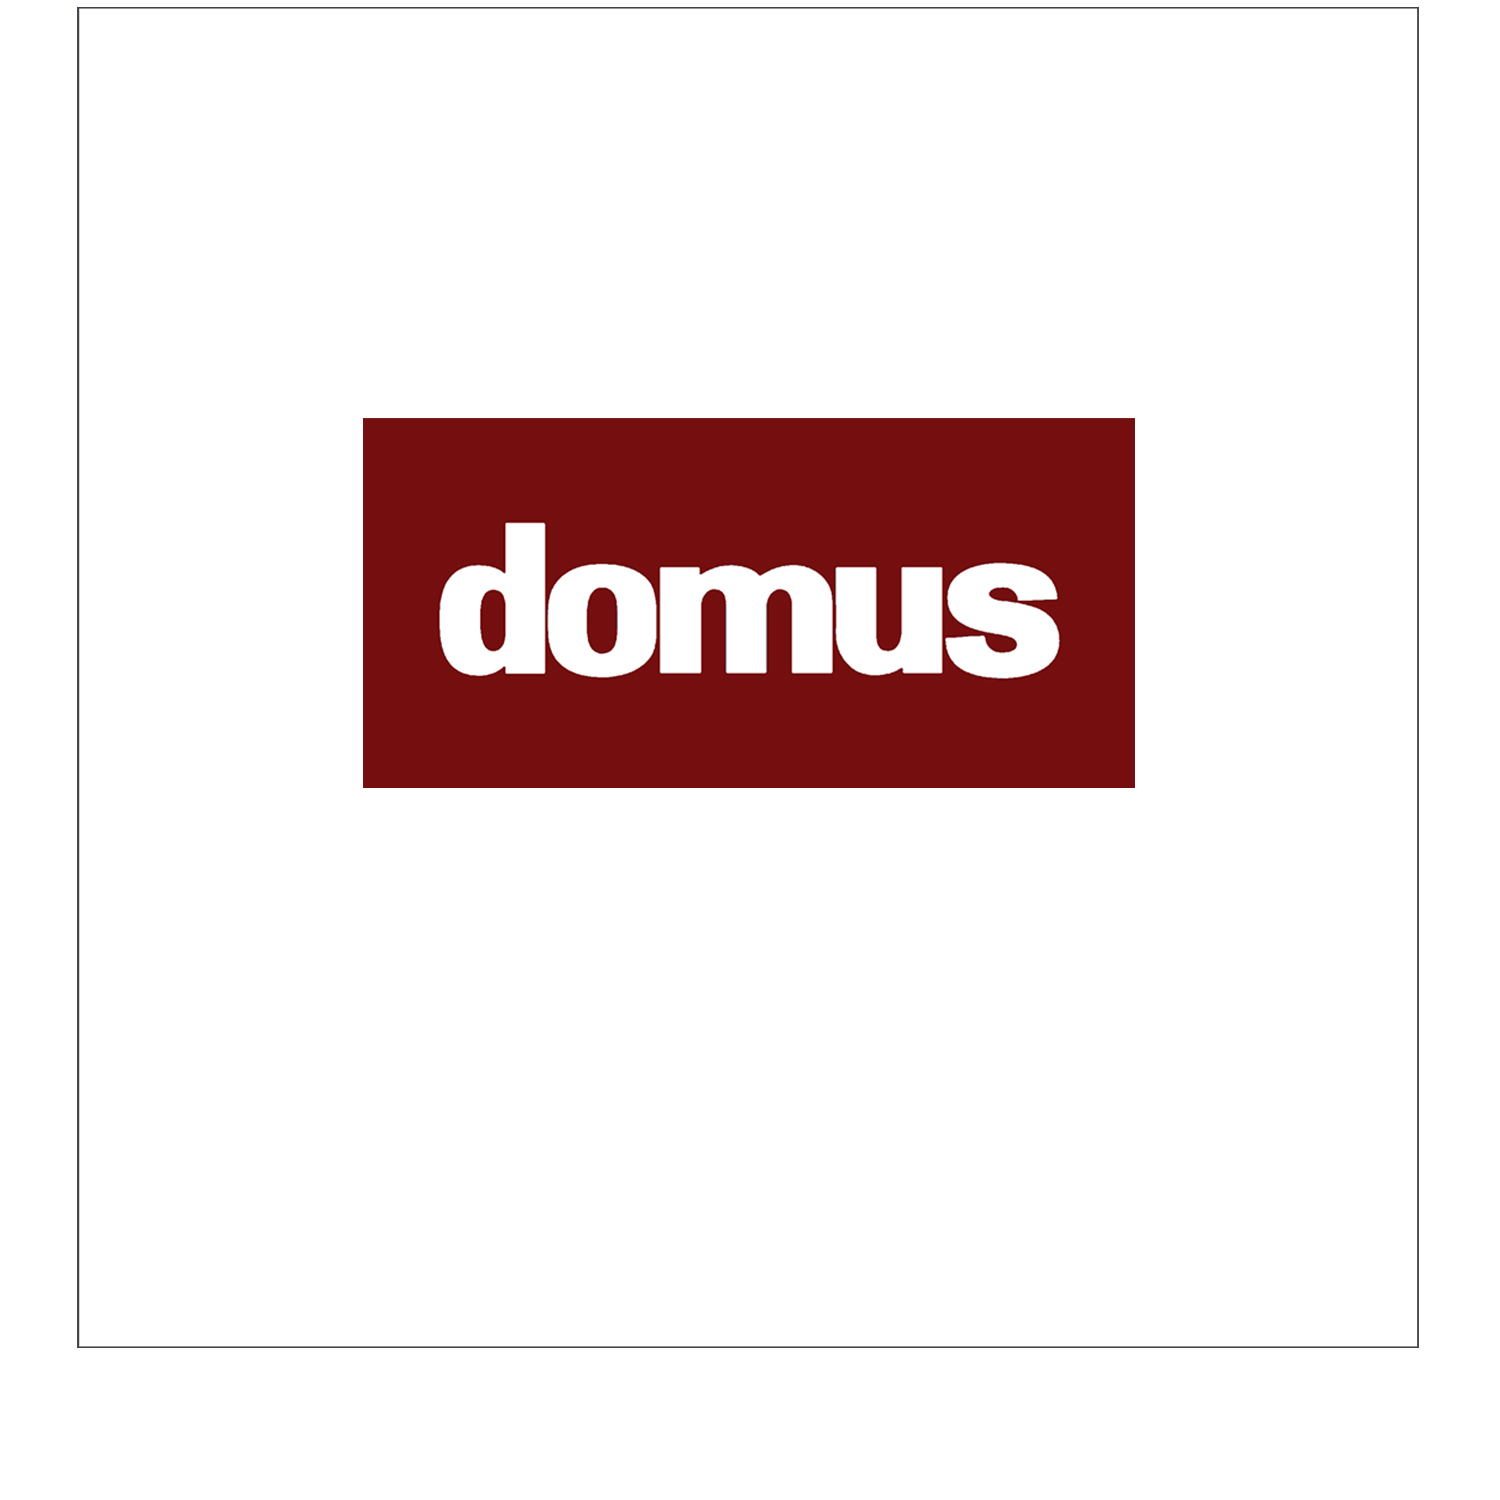 press-domus.jpg